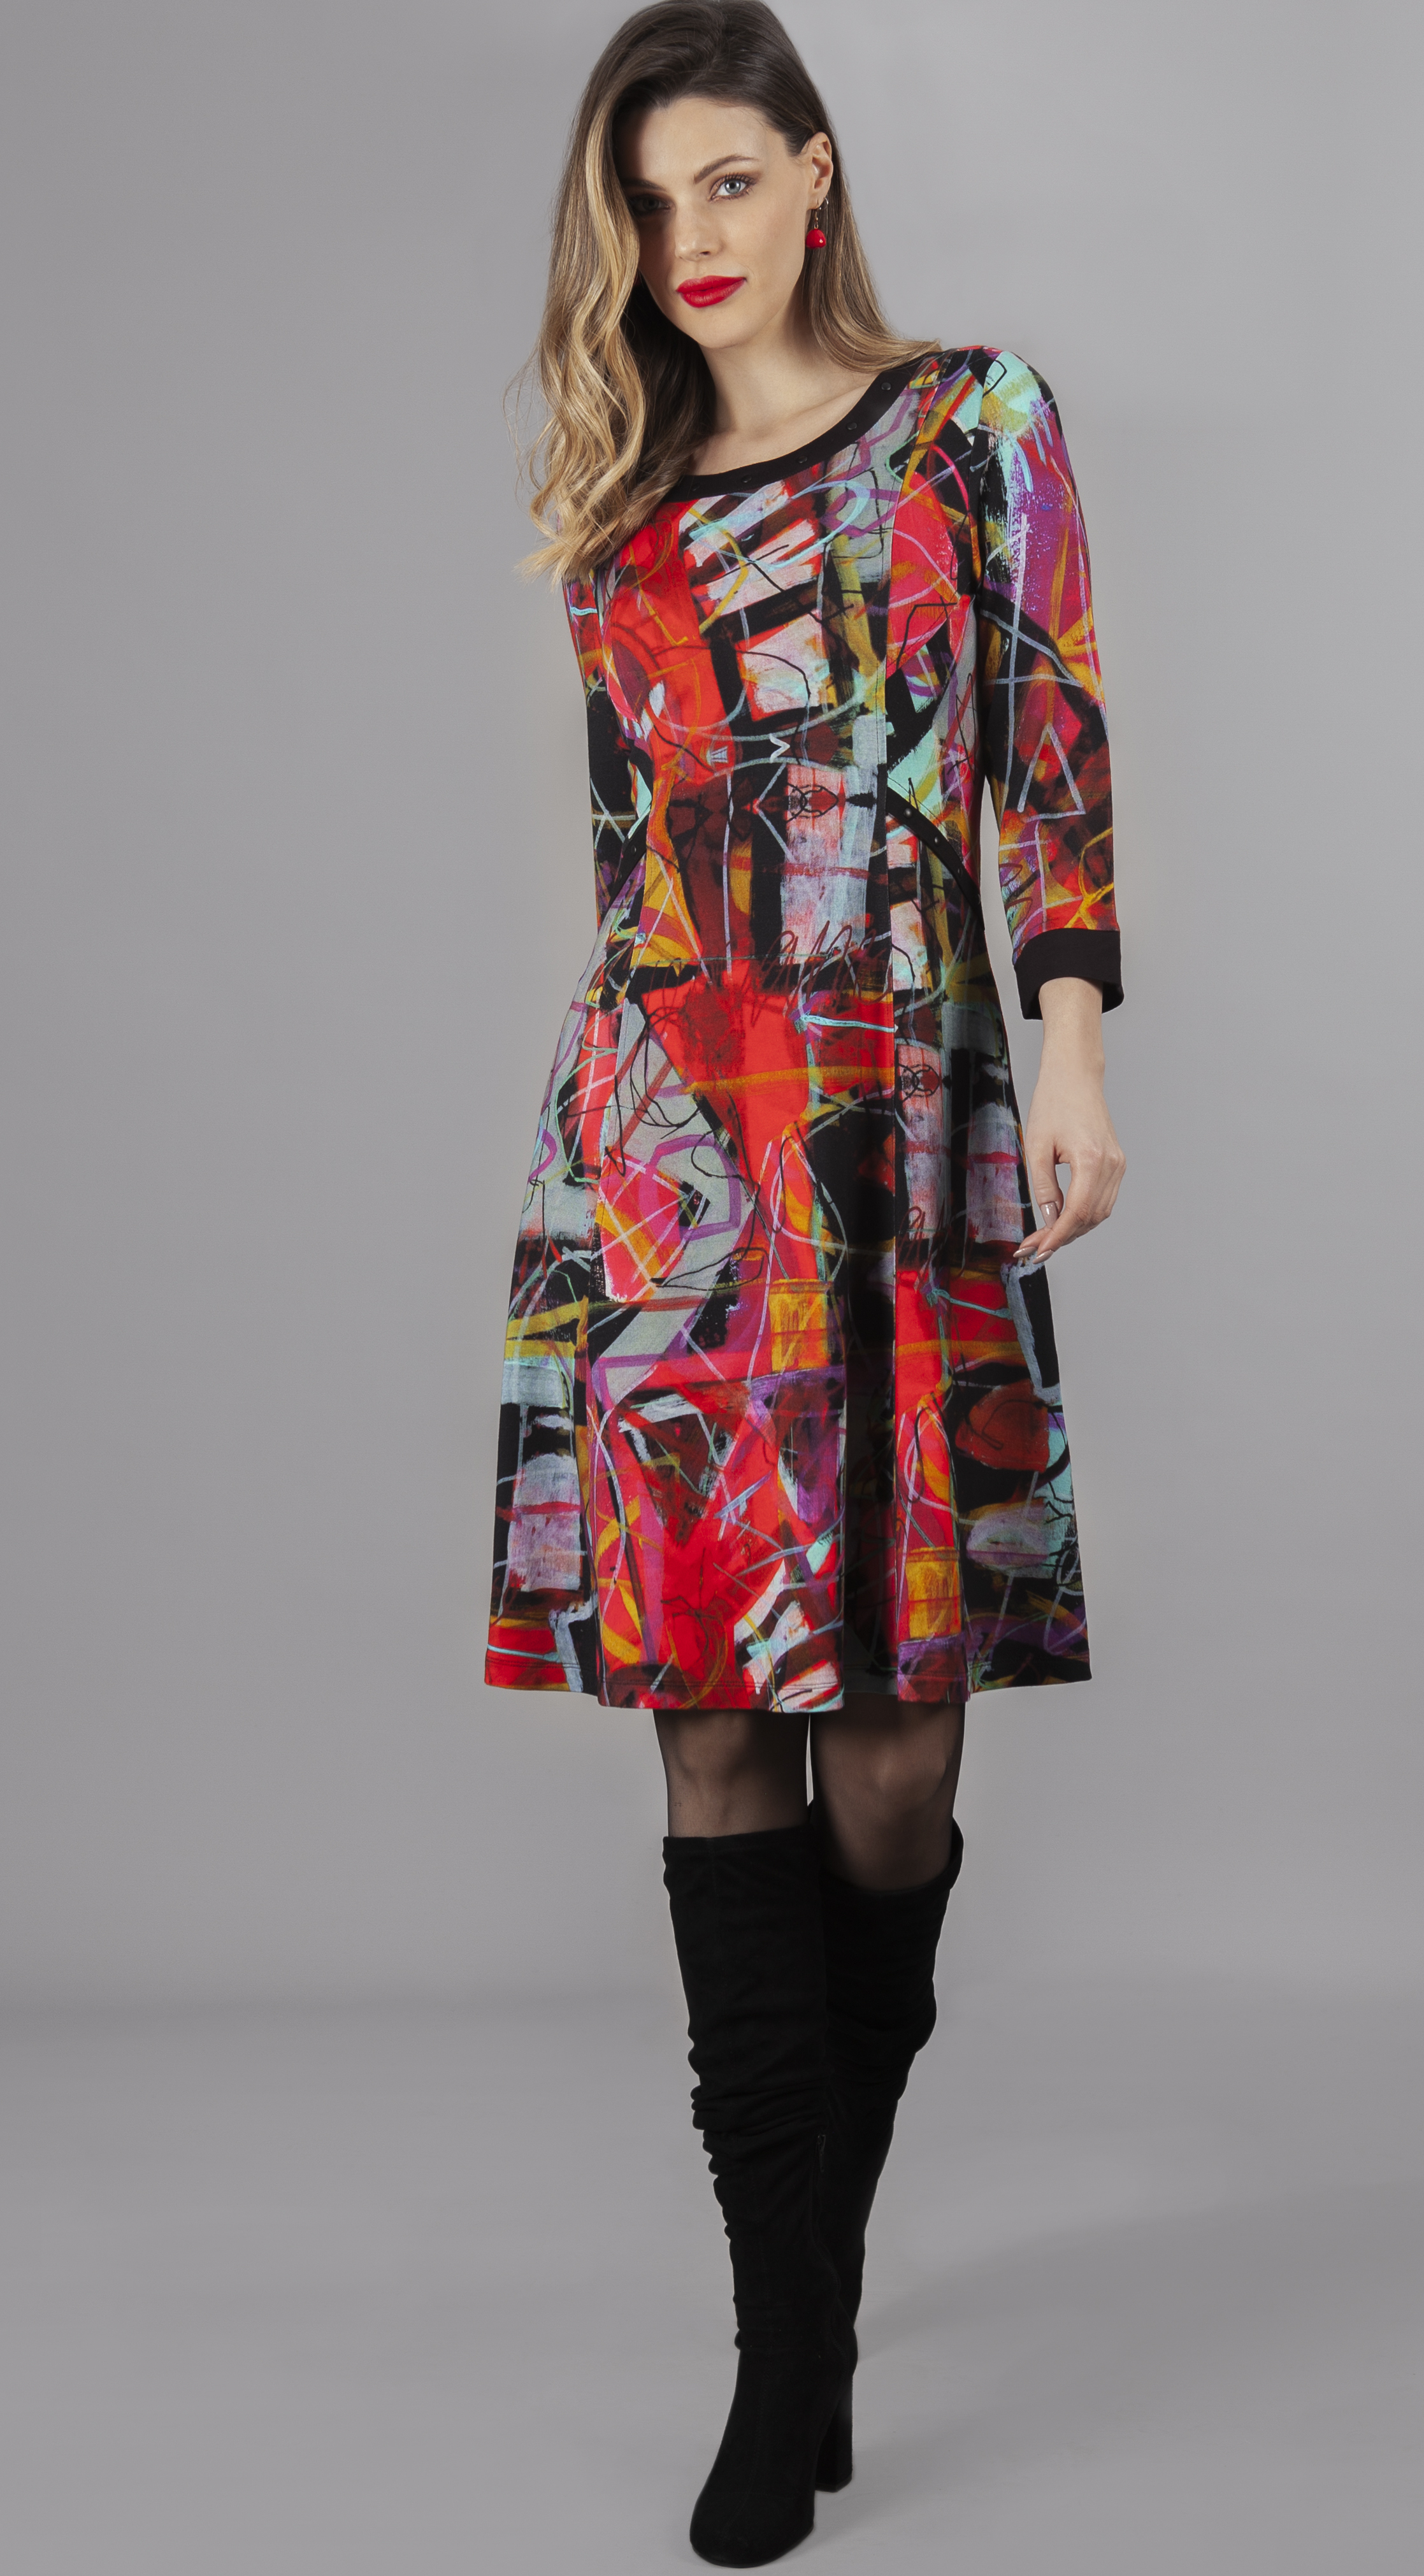 Simply Art Dolcezza: Red 3 Graffiti Abstract Art Flared Dress (1 Left!) DOLCEZZA_SIMPLYART_70626_N